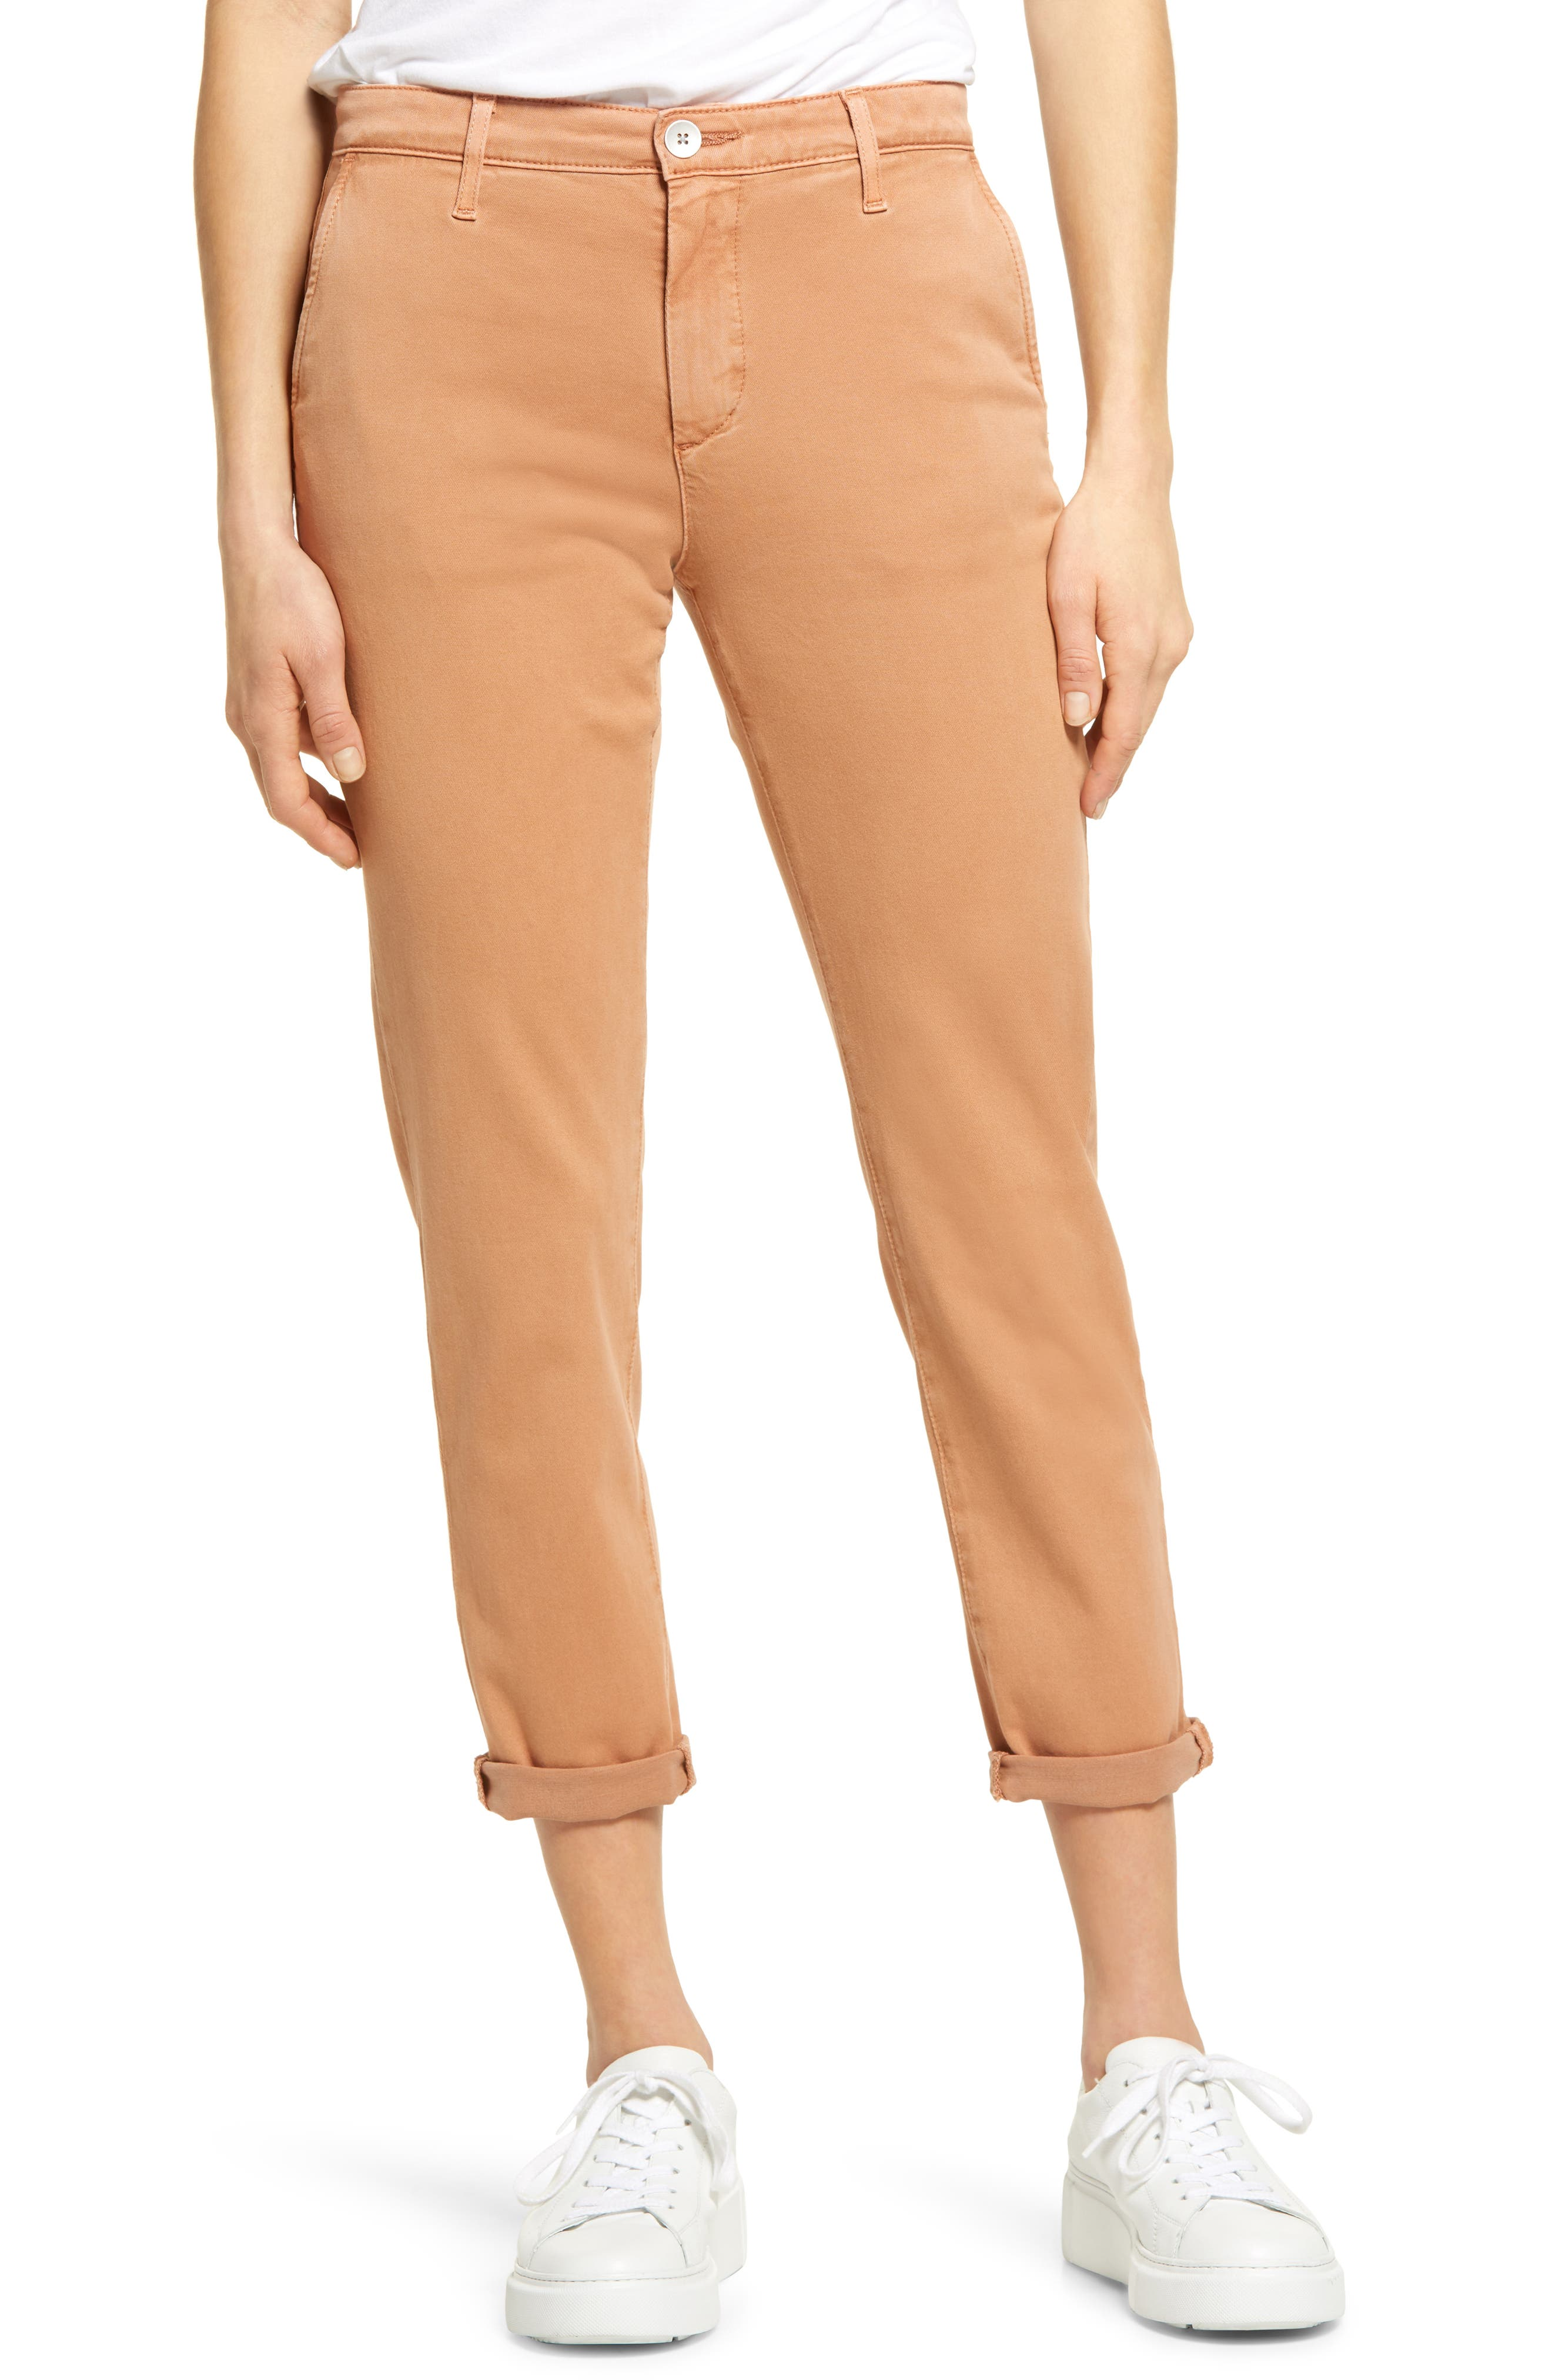 Turmeric Yellow Coloured Soft and Cozy Knit Boho Leisure Pants  Trousers